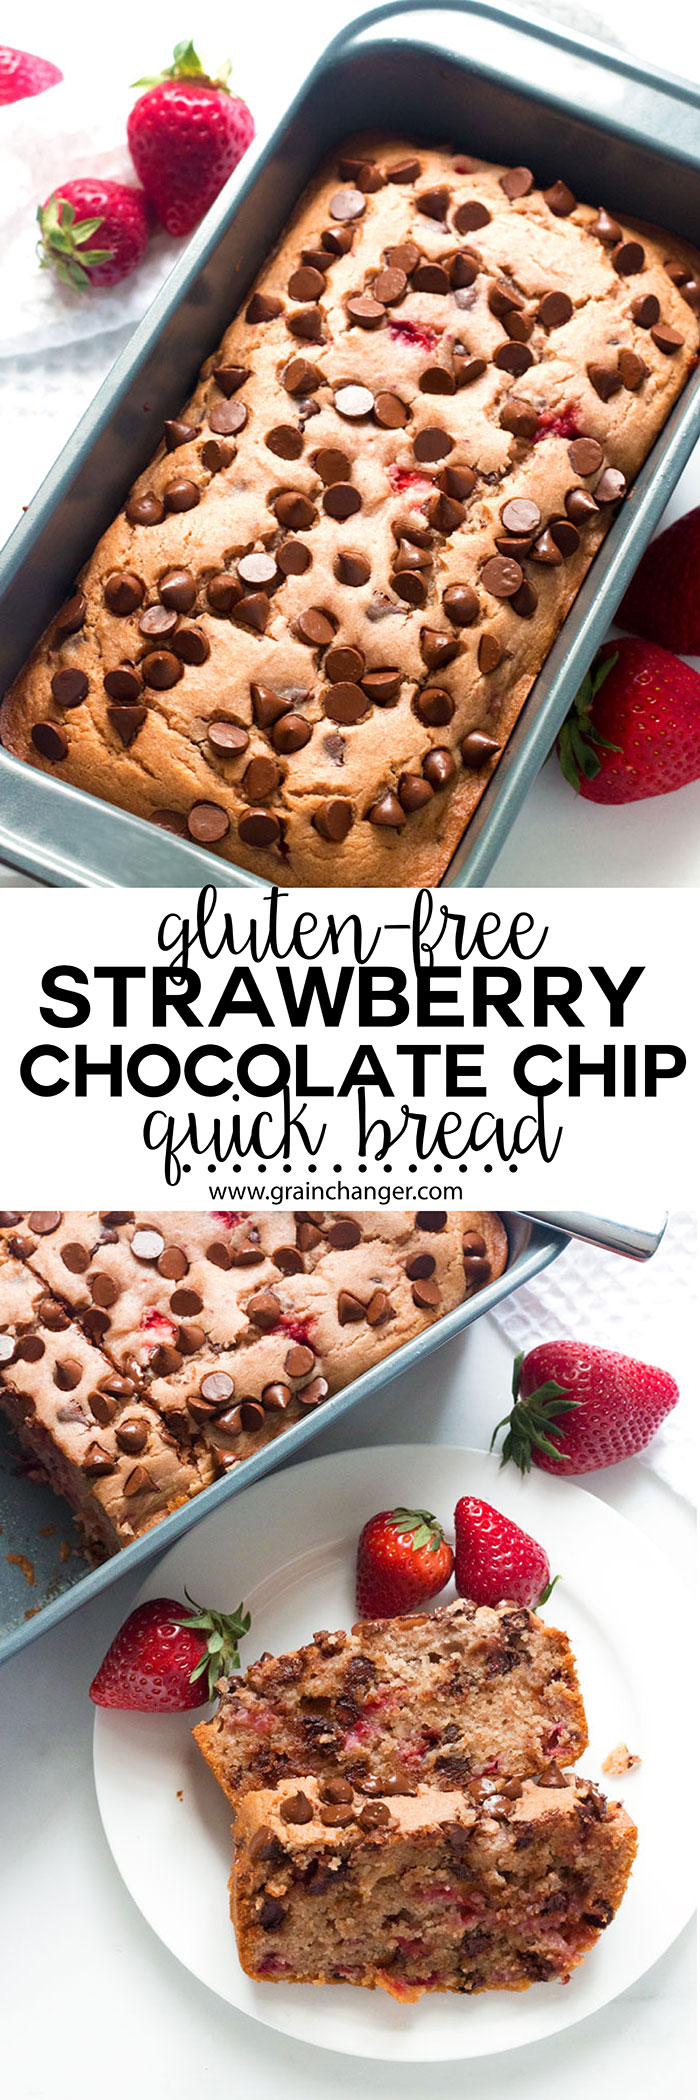 Gluten-Free Strawberry Chocolate Chip Quick Bread | www.grainchanger.com